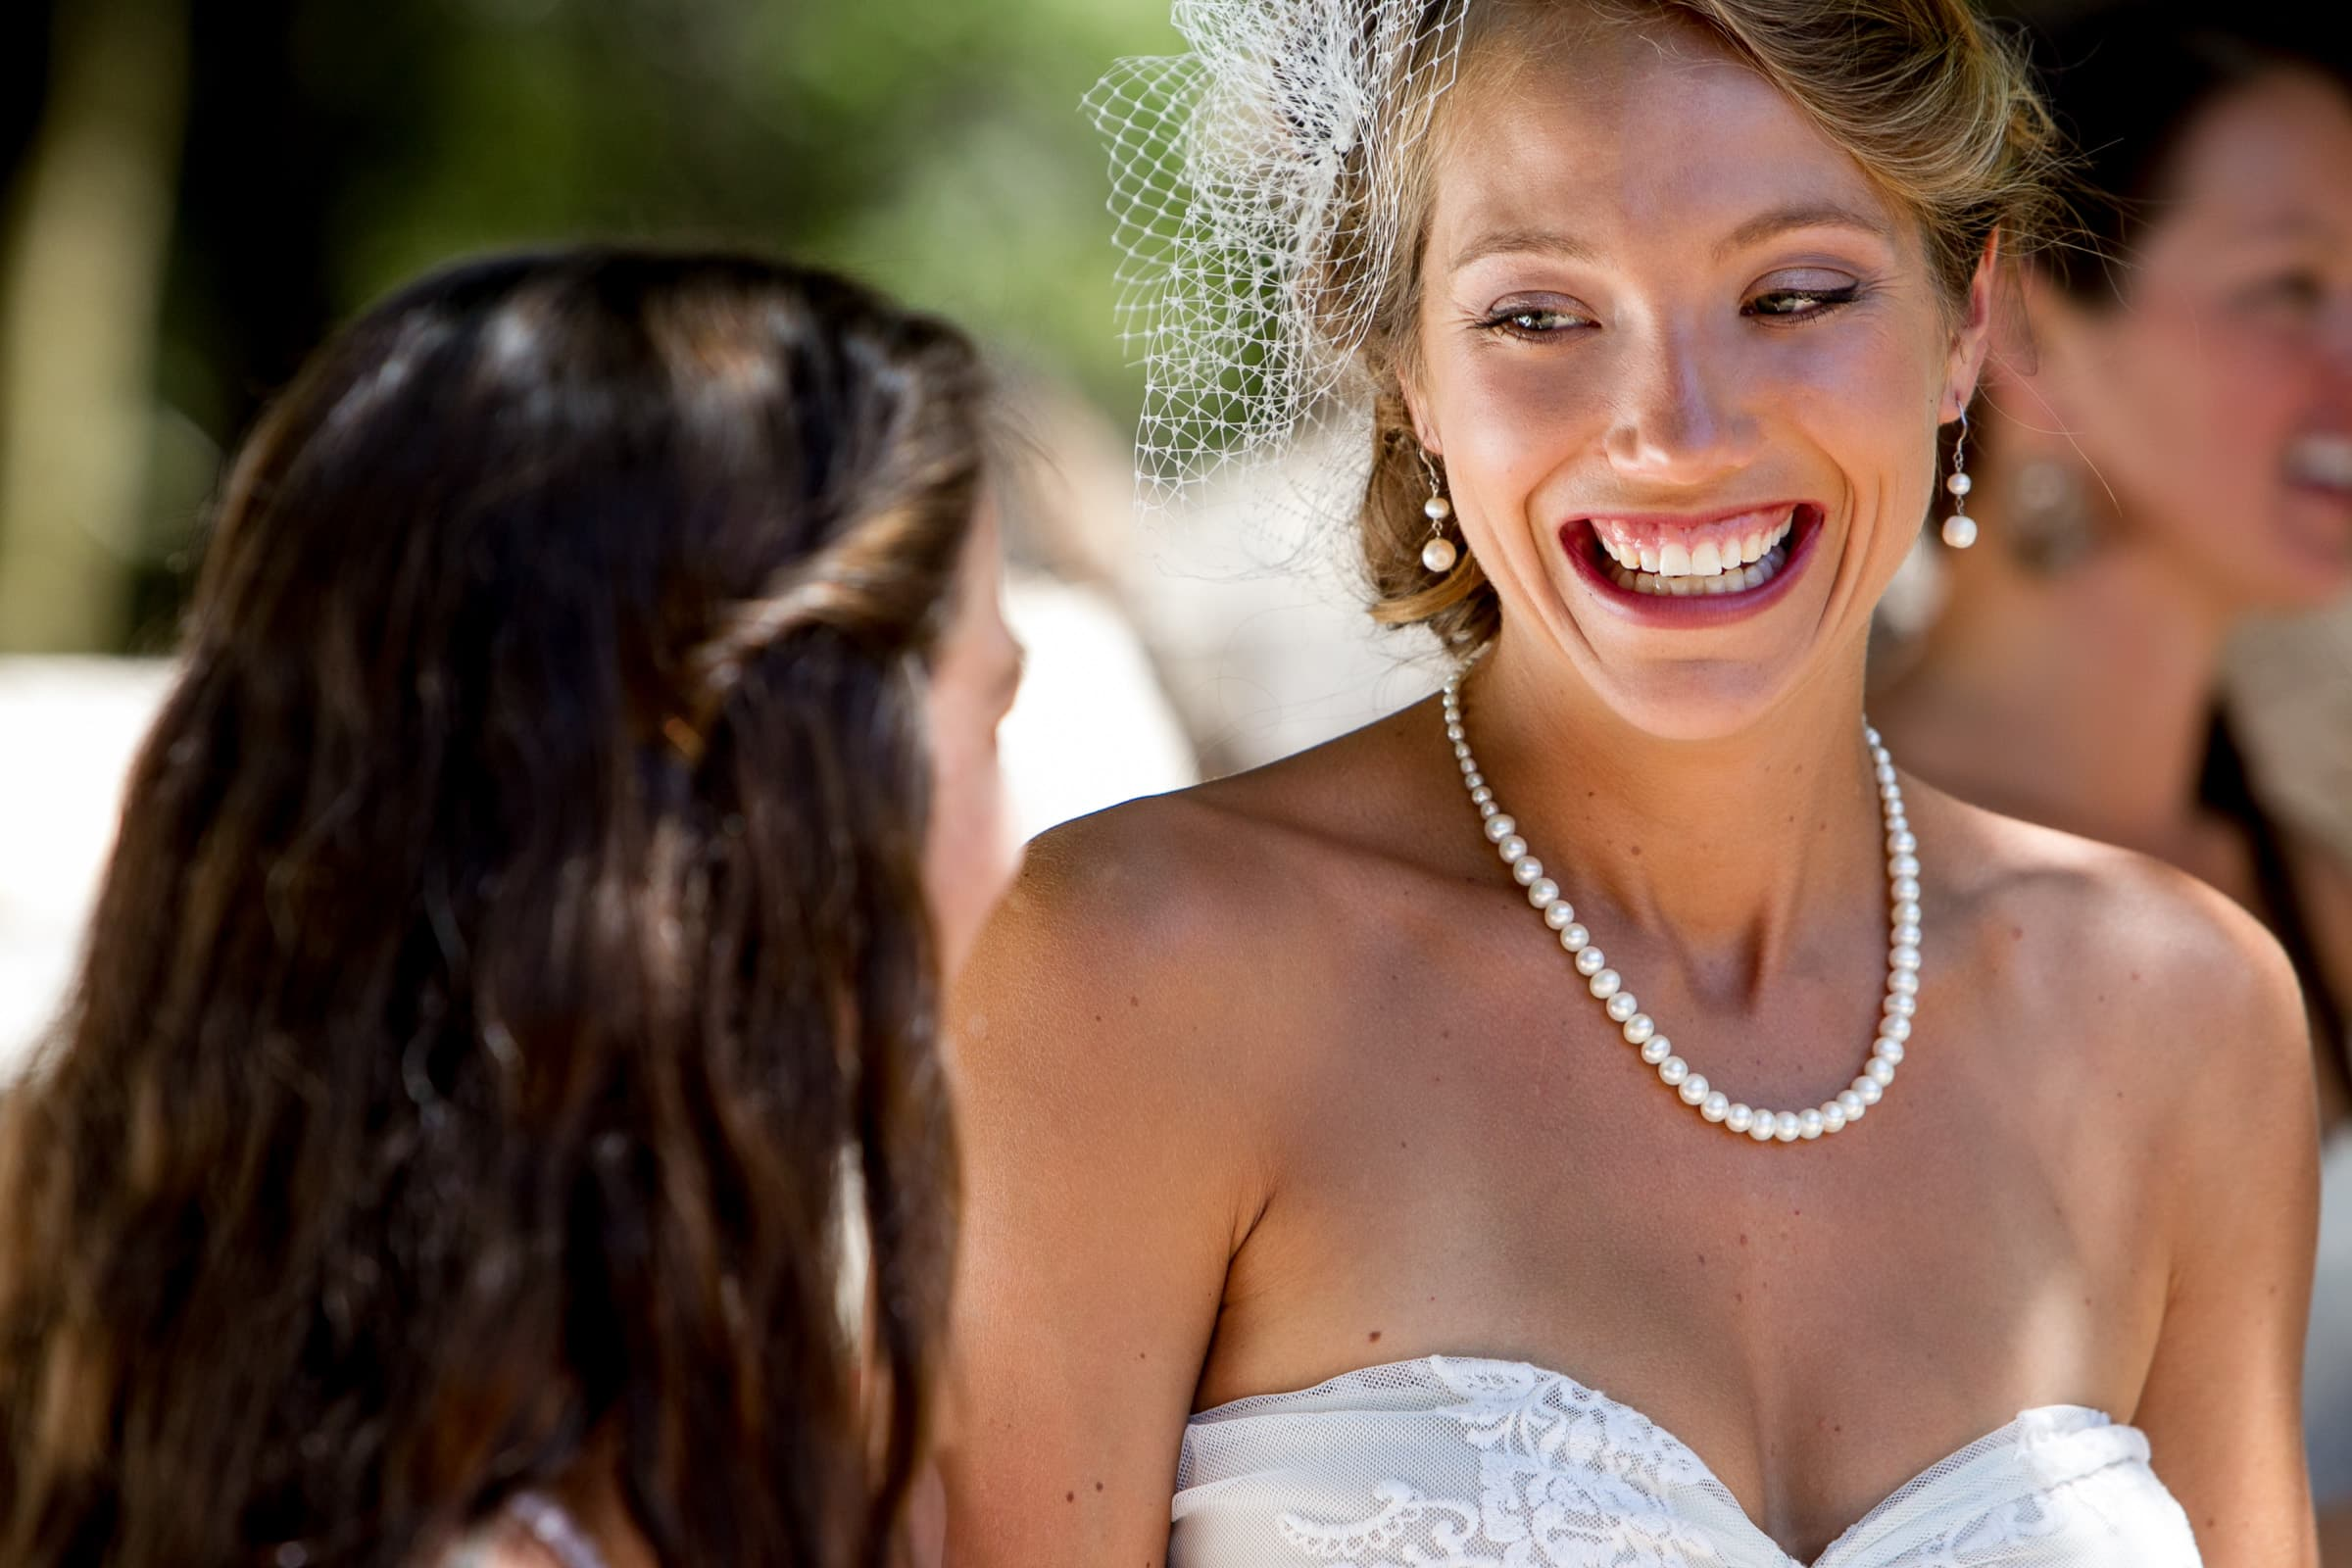 A happy bride laughing with friends moments before her Humboldt California wedding at Beginnings Briceland